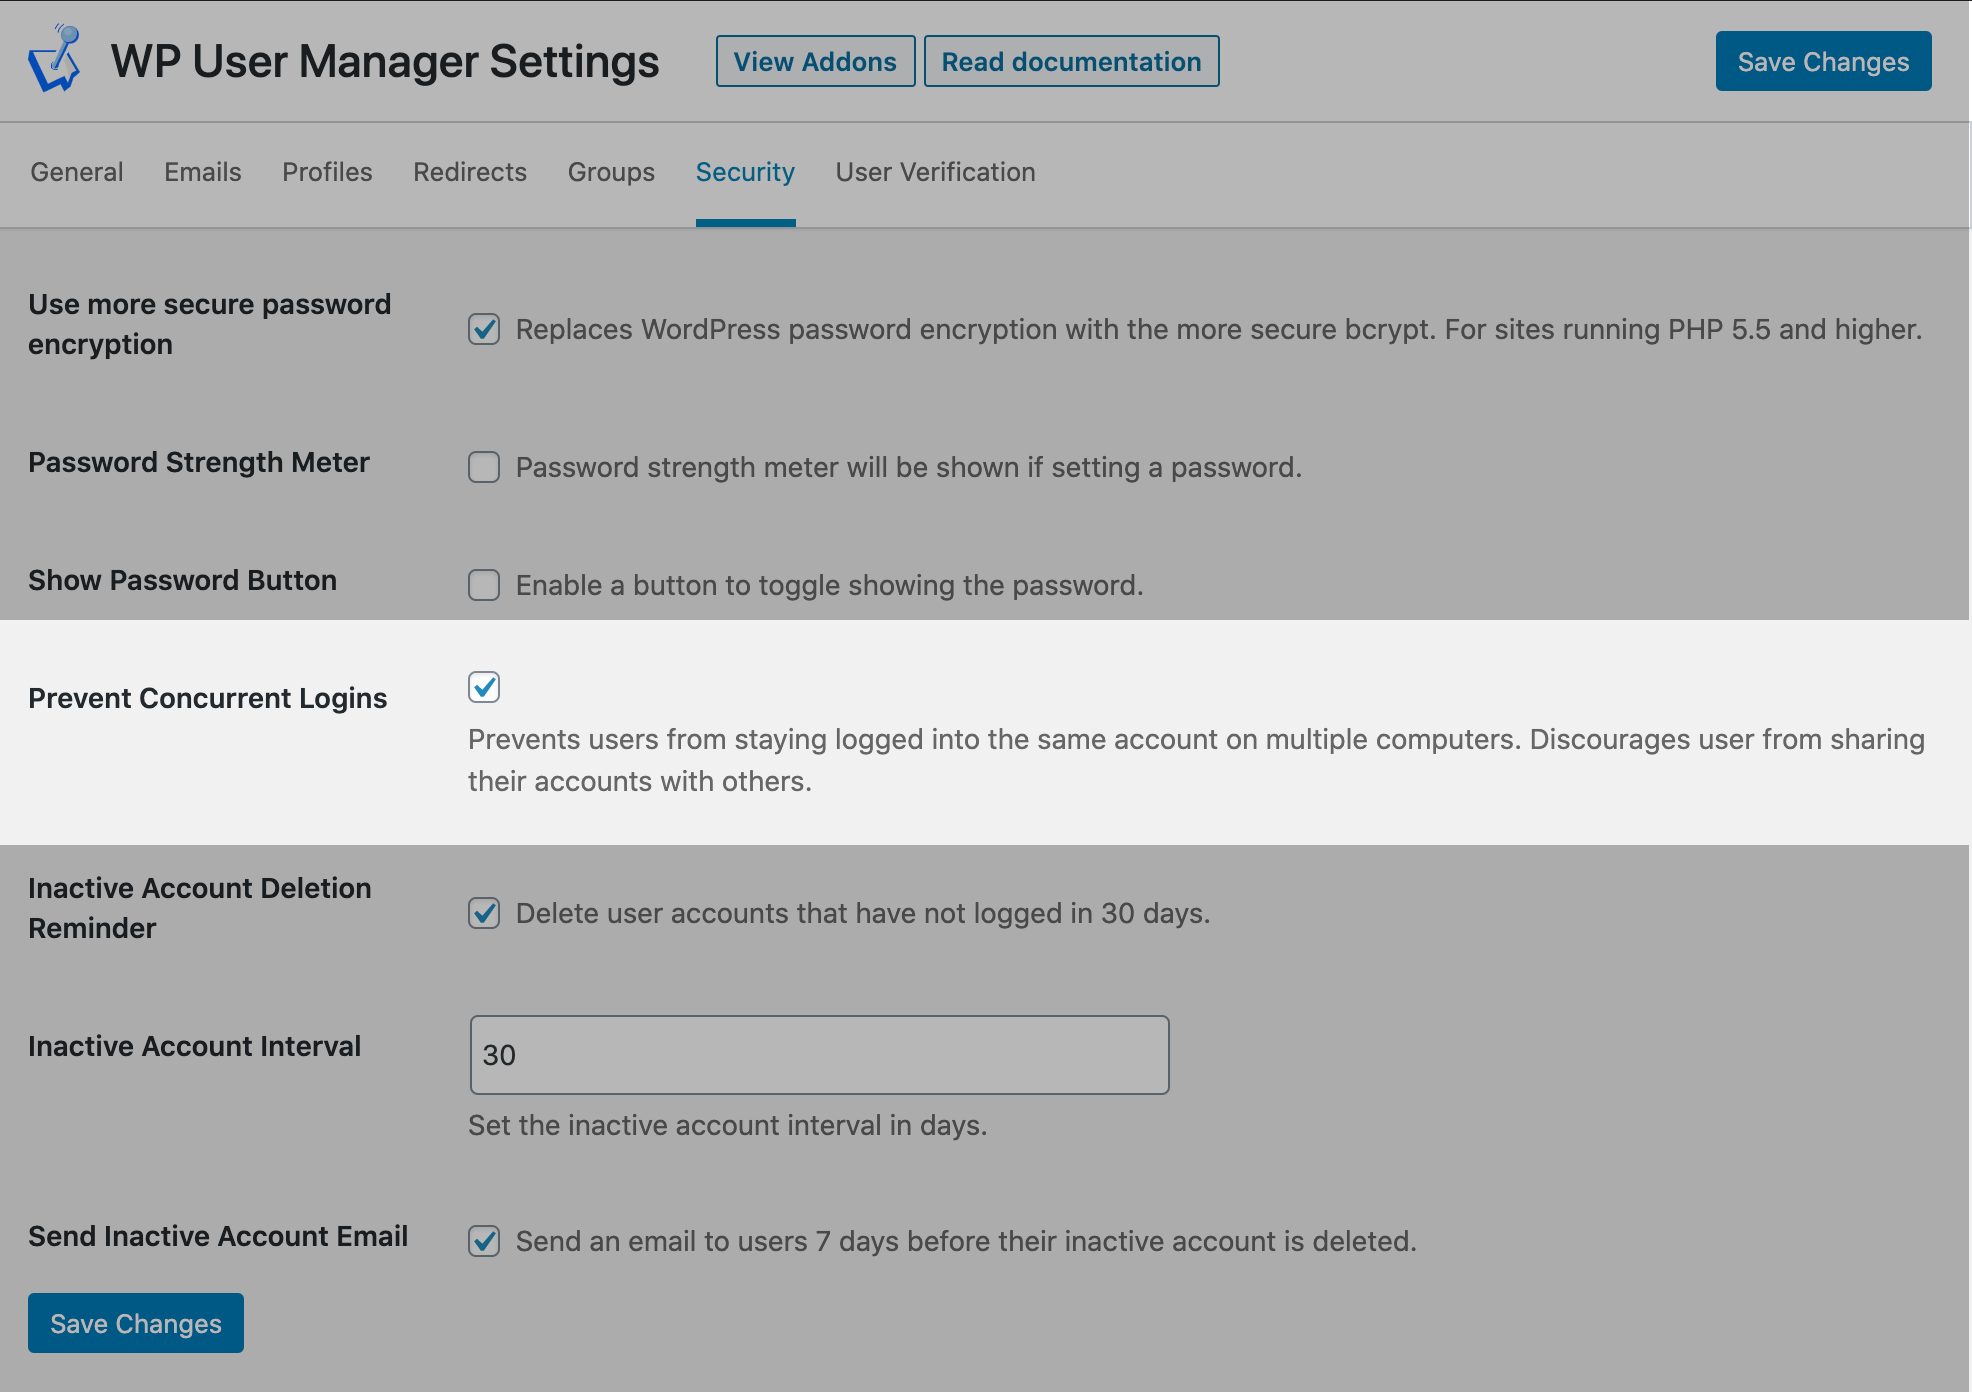 Prevent Concurrent Logins screenshot